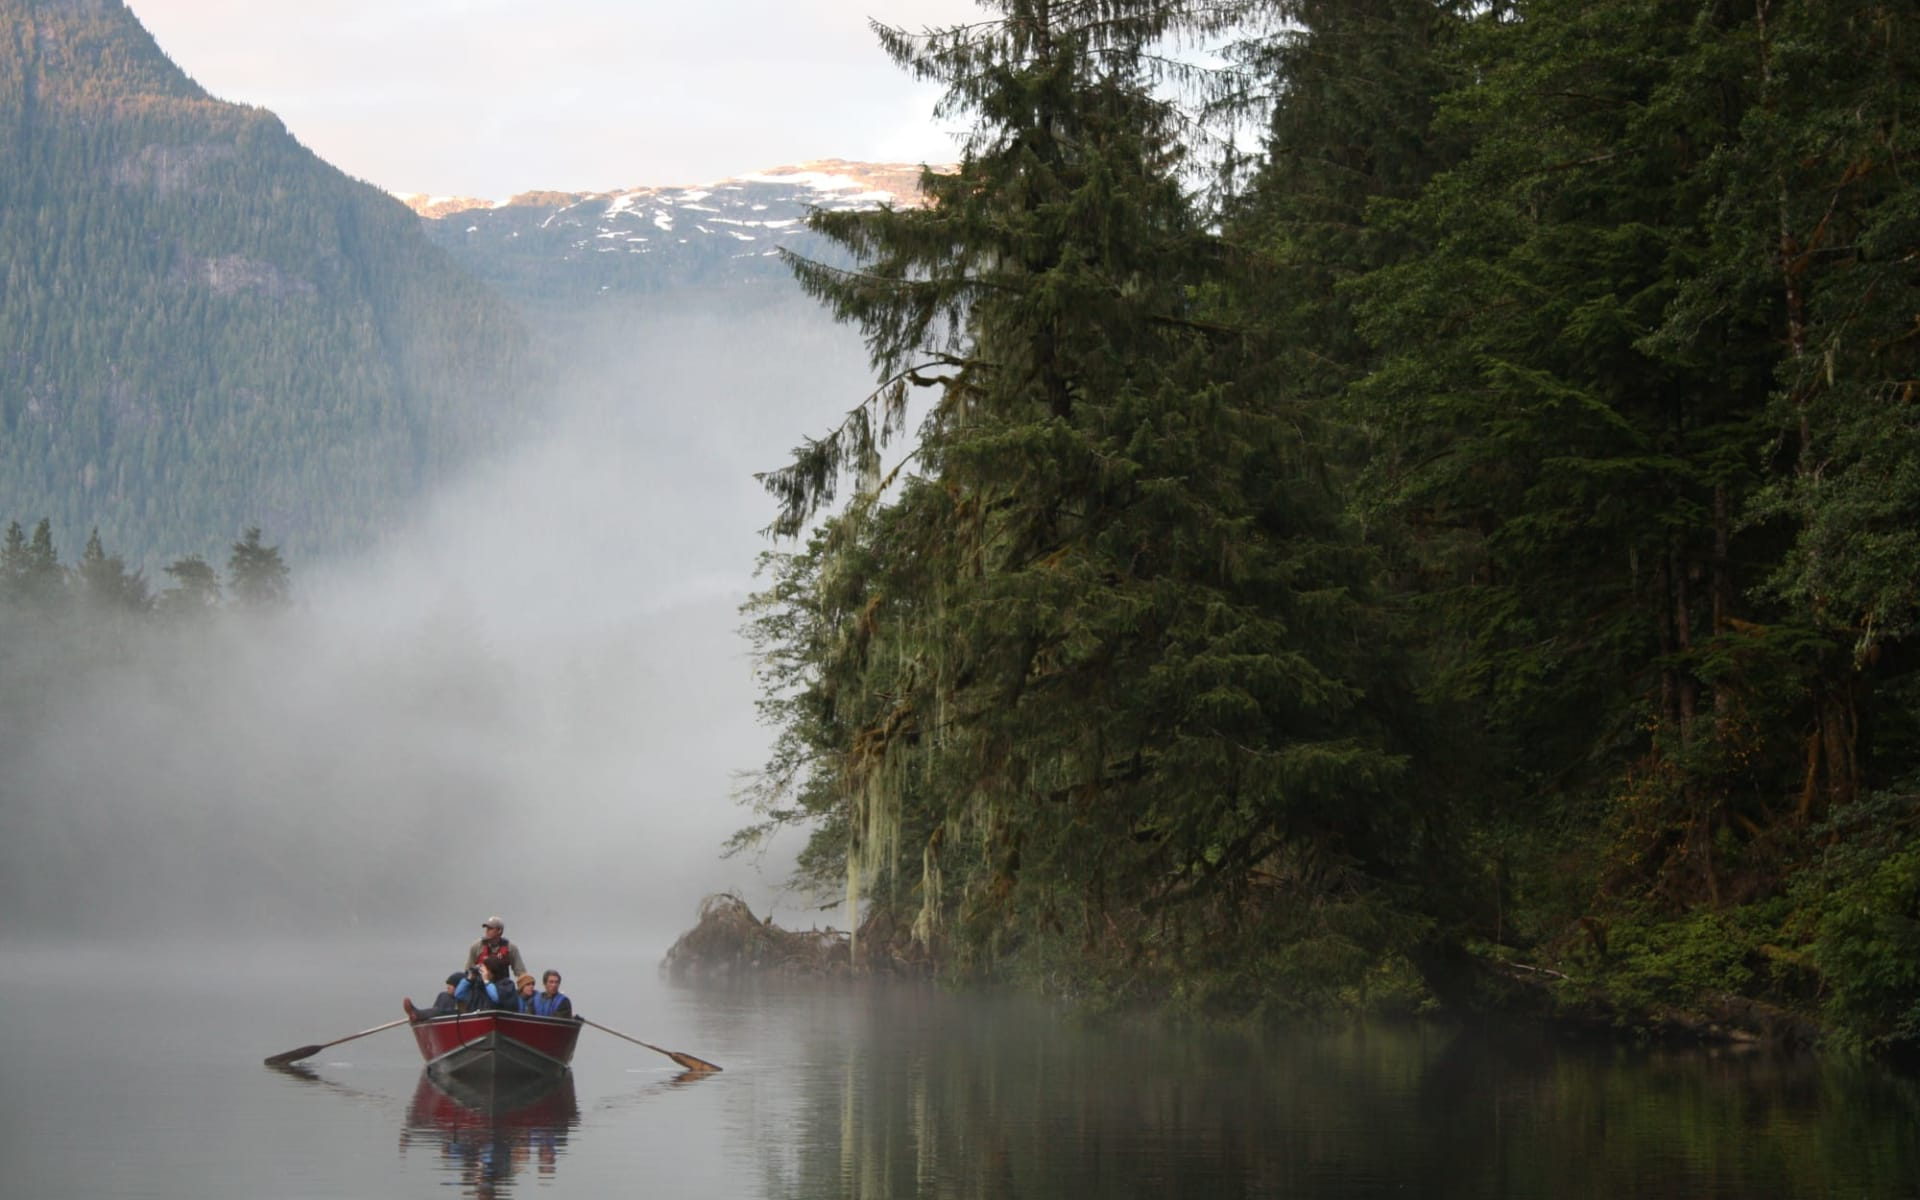 Bärenbeobachtung Great Bear Lodge 4 Tage ab Port Hardy: activities: Great Bear Lodge - Bootstour